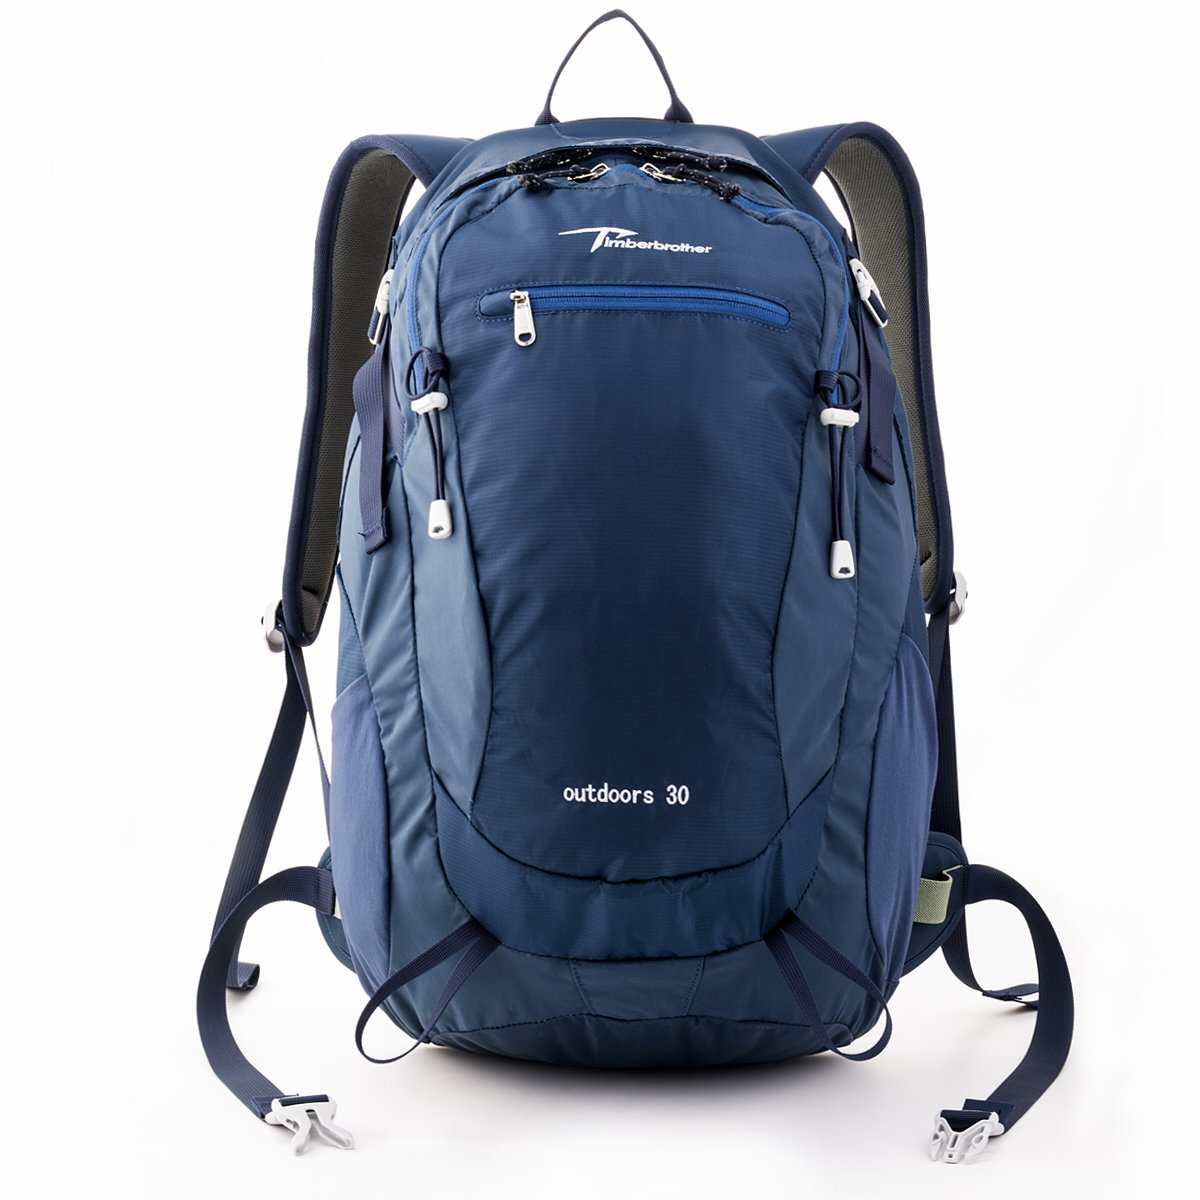 Timberbrother Hiking Backpack / Trekking Rucksacks Internal Frame Waterproof Daypack for Camping, Mountaineering, Climbing and Other Outdoor Activities (Blue--30 Liters) ypd